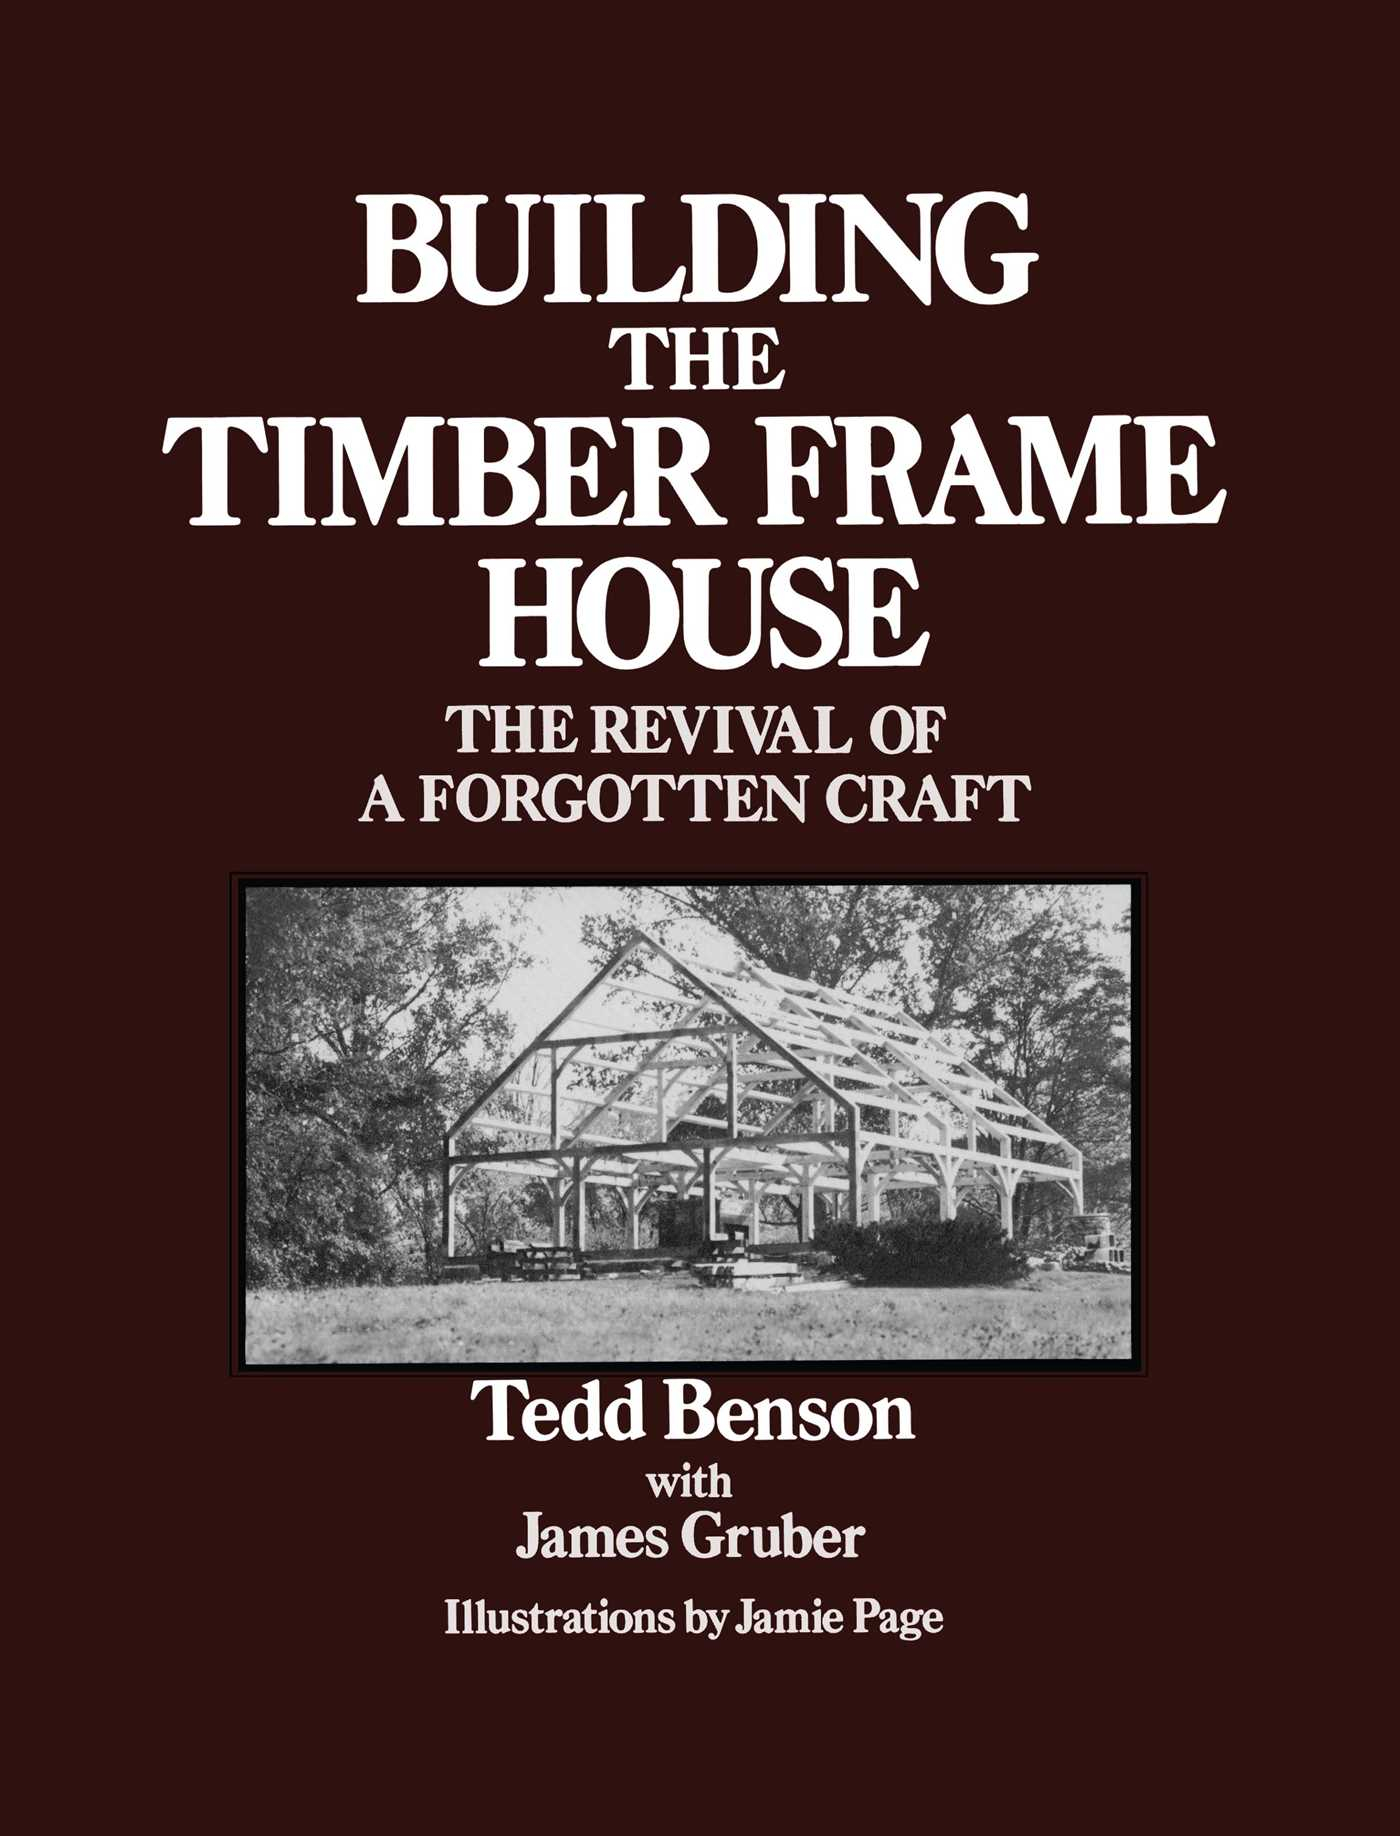 Building the timber frame house 9781439107072 hr